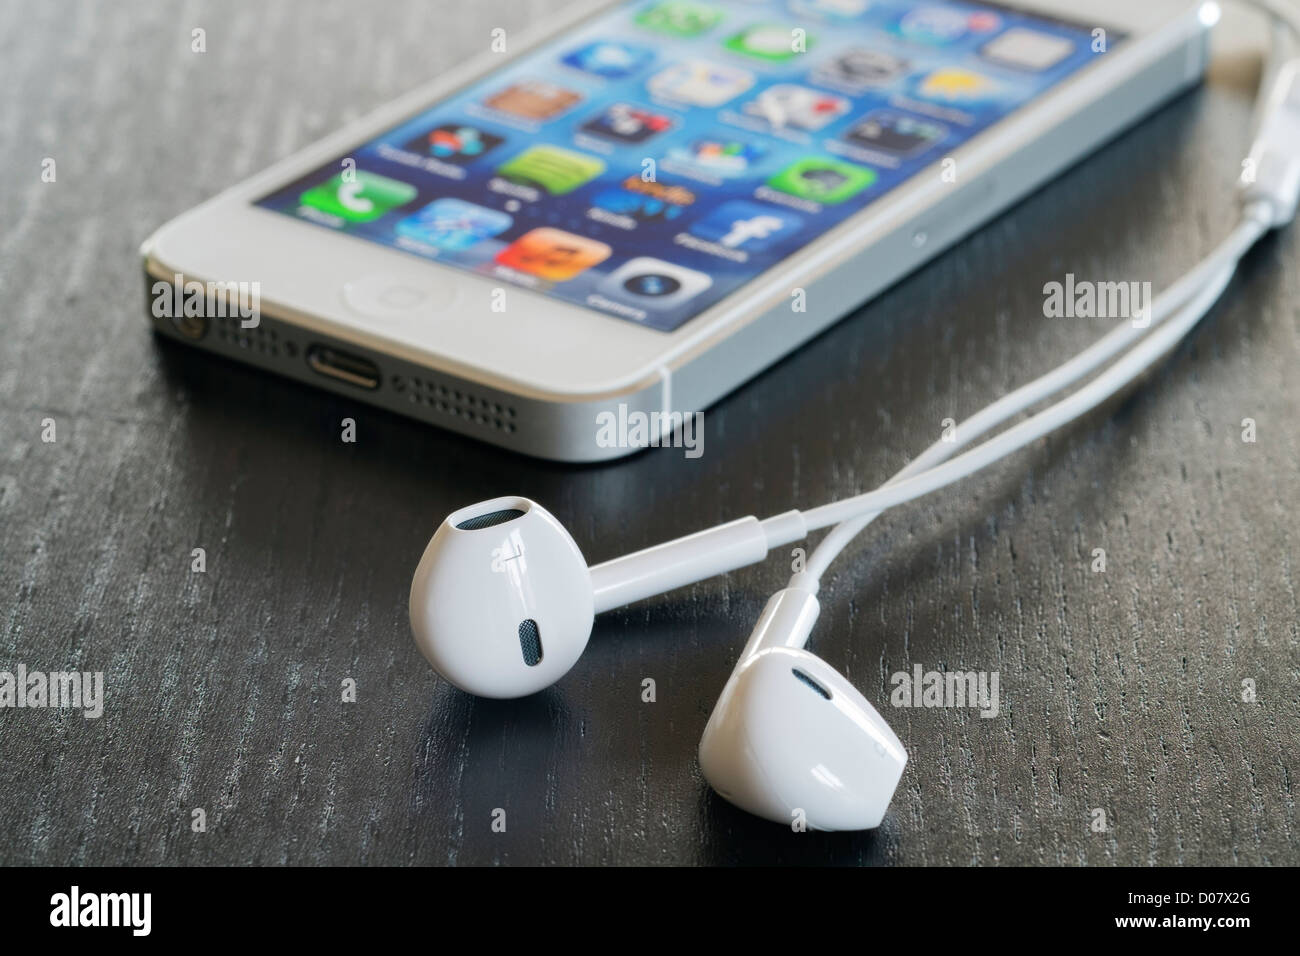 Detail of iPhone 5 and earphones - Stock Image